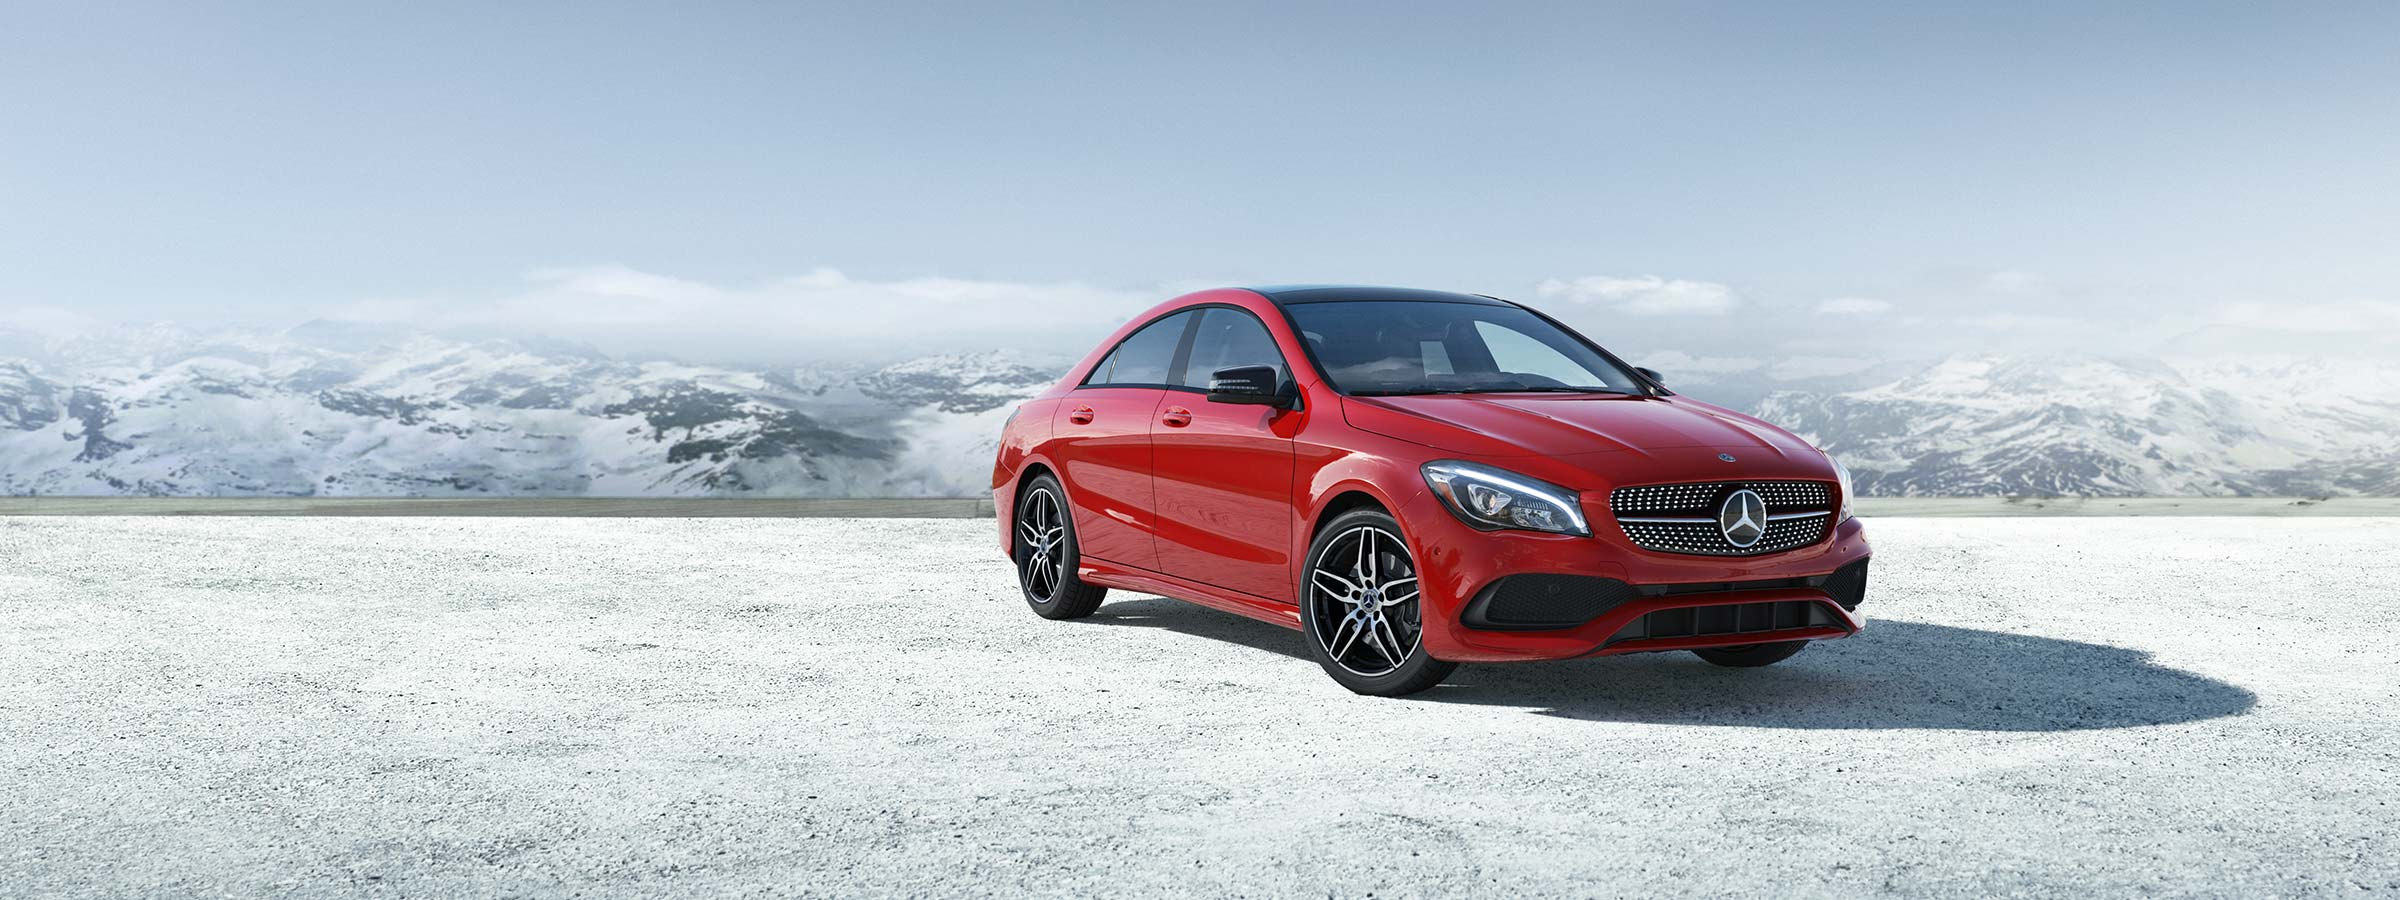 A Red 2019 Cla 250 Coupe Parked In Front Of Snow Covered Mountains